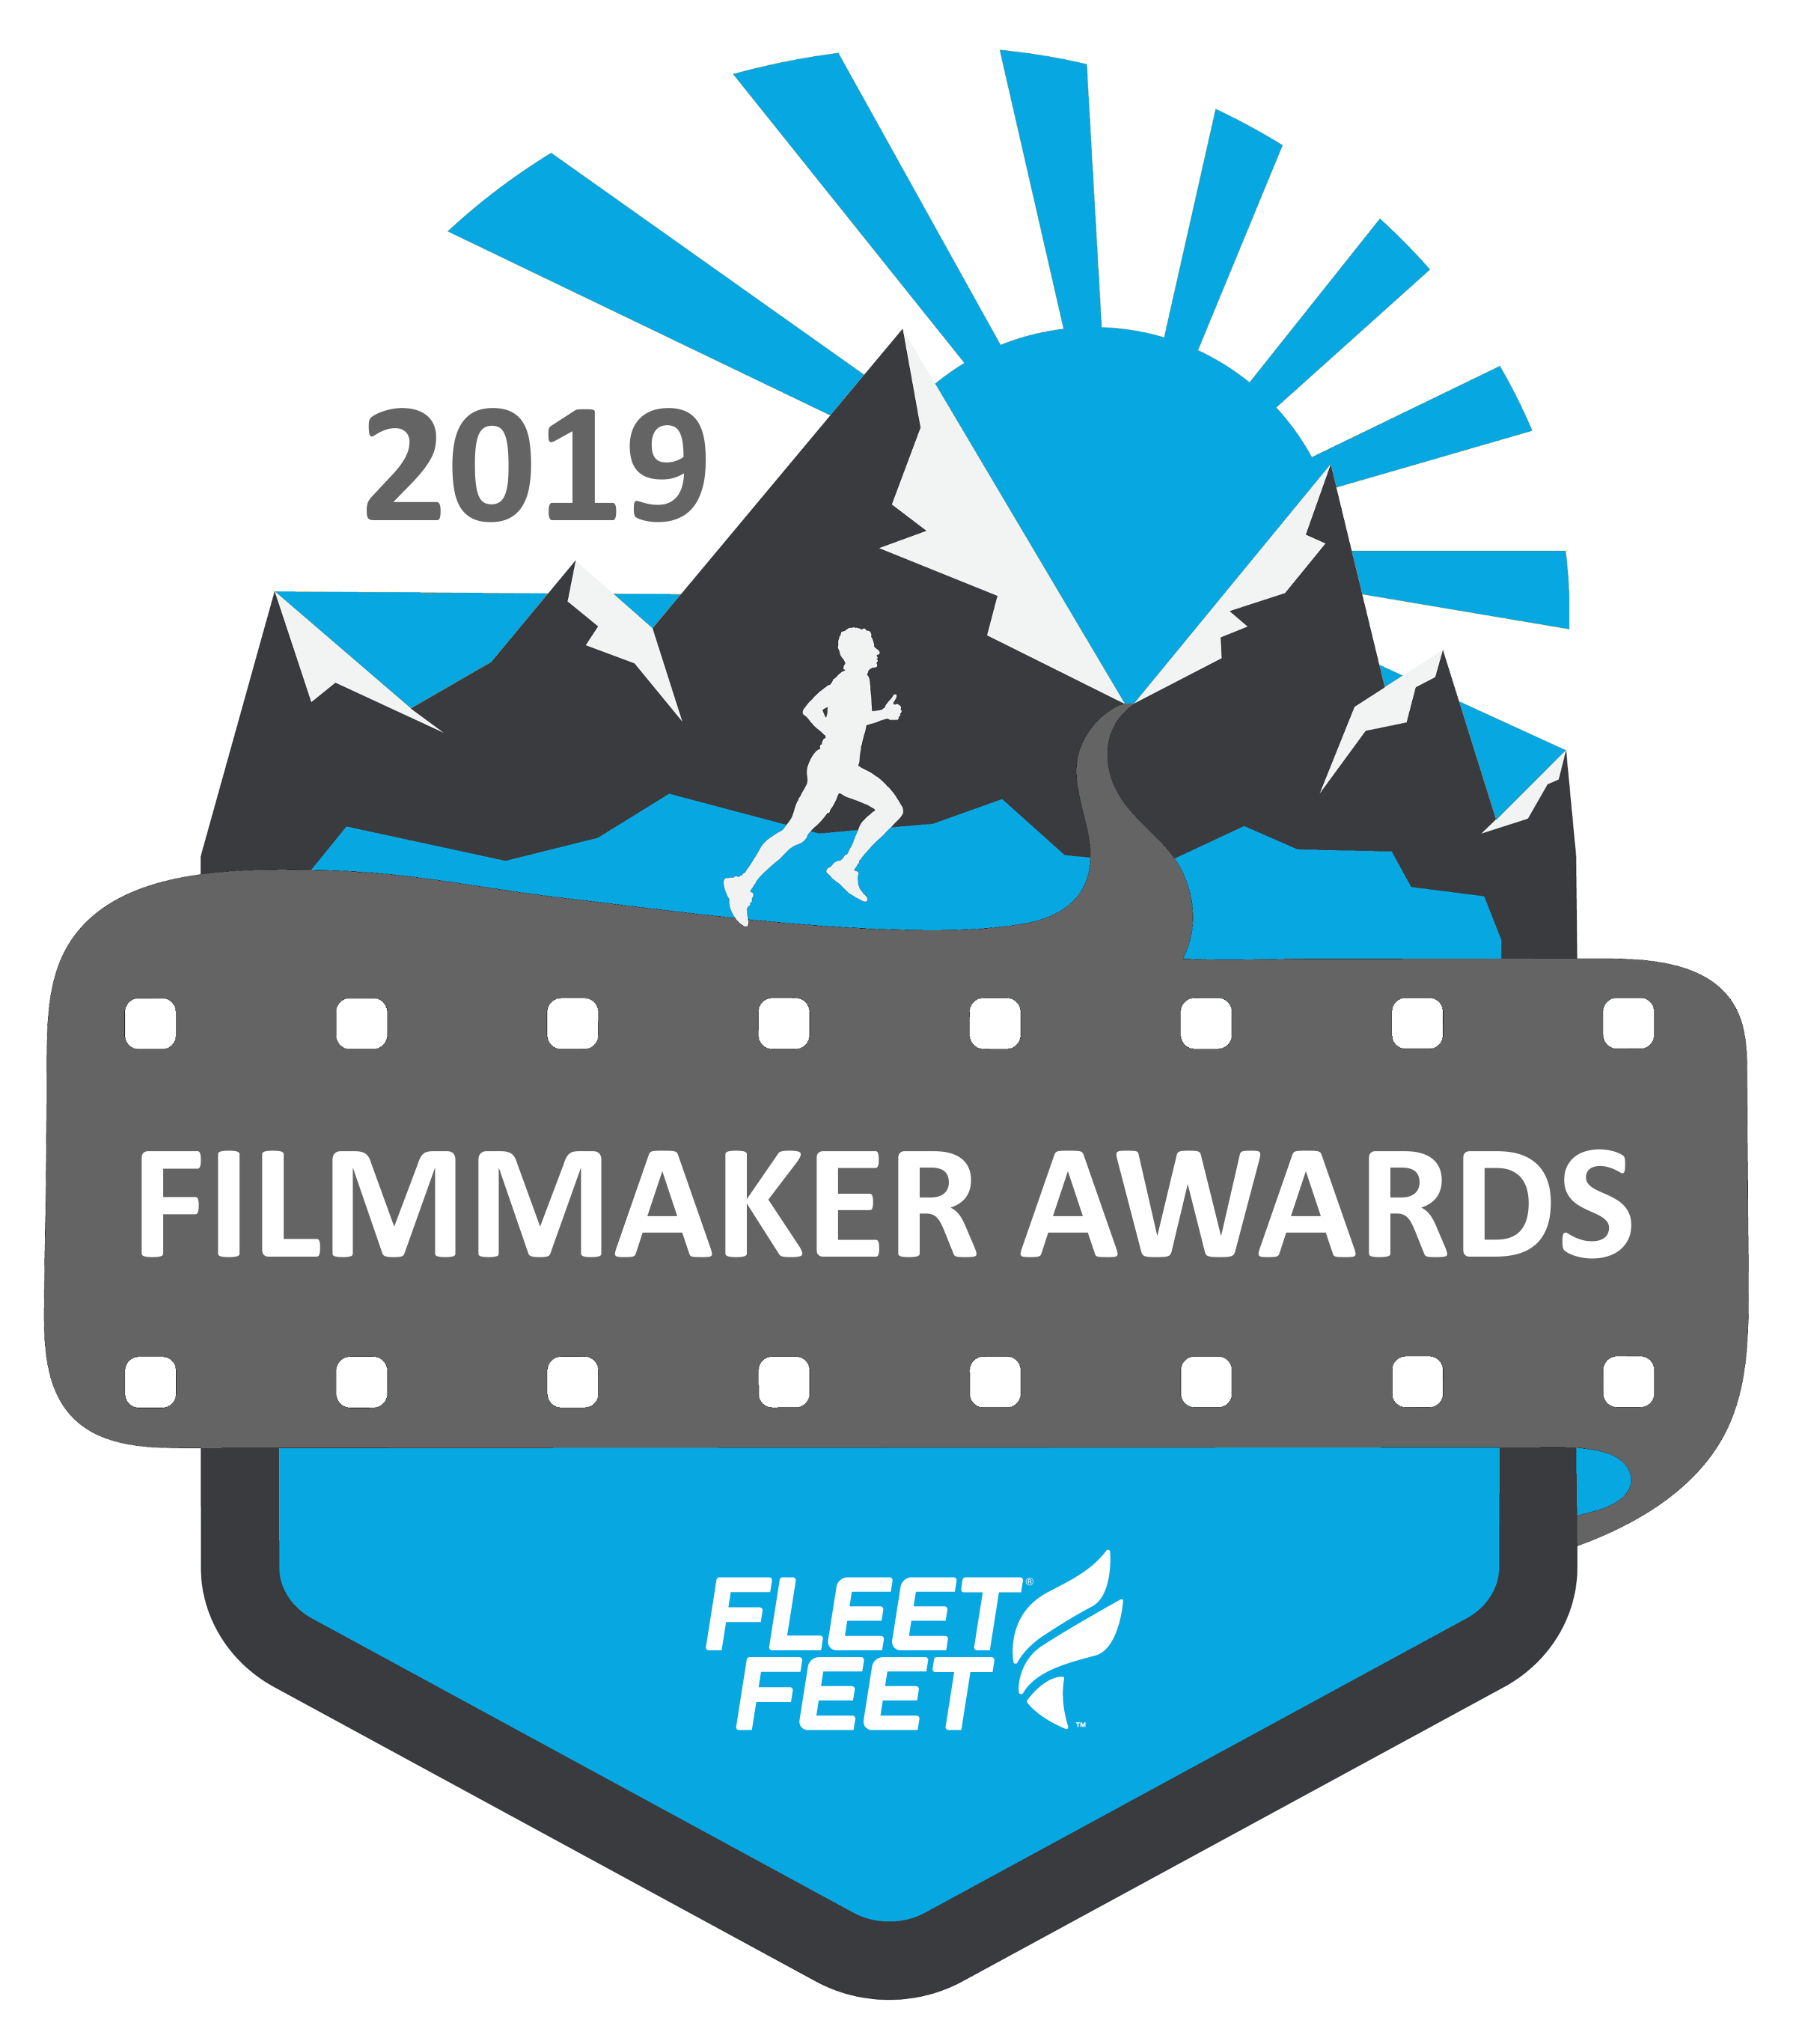 Fleet Feet Filmmaker Awards.